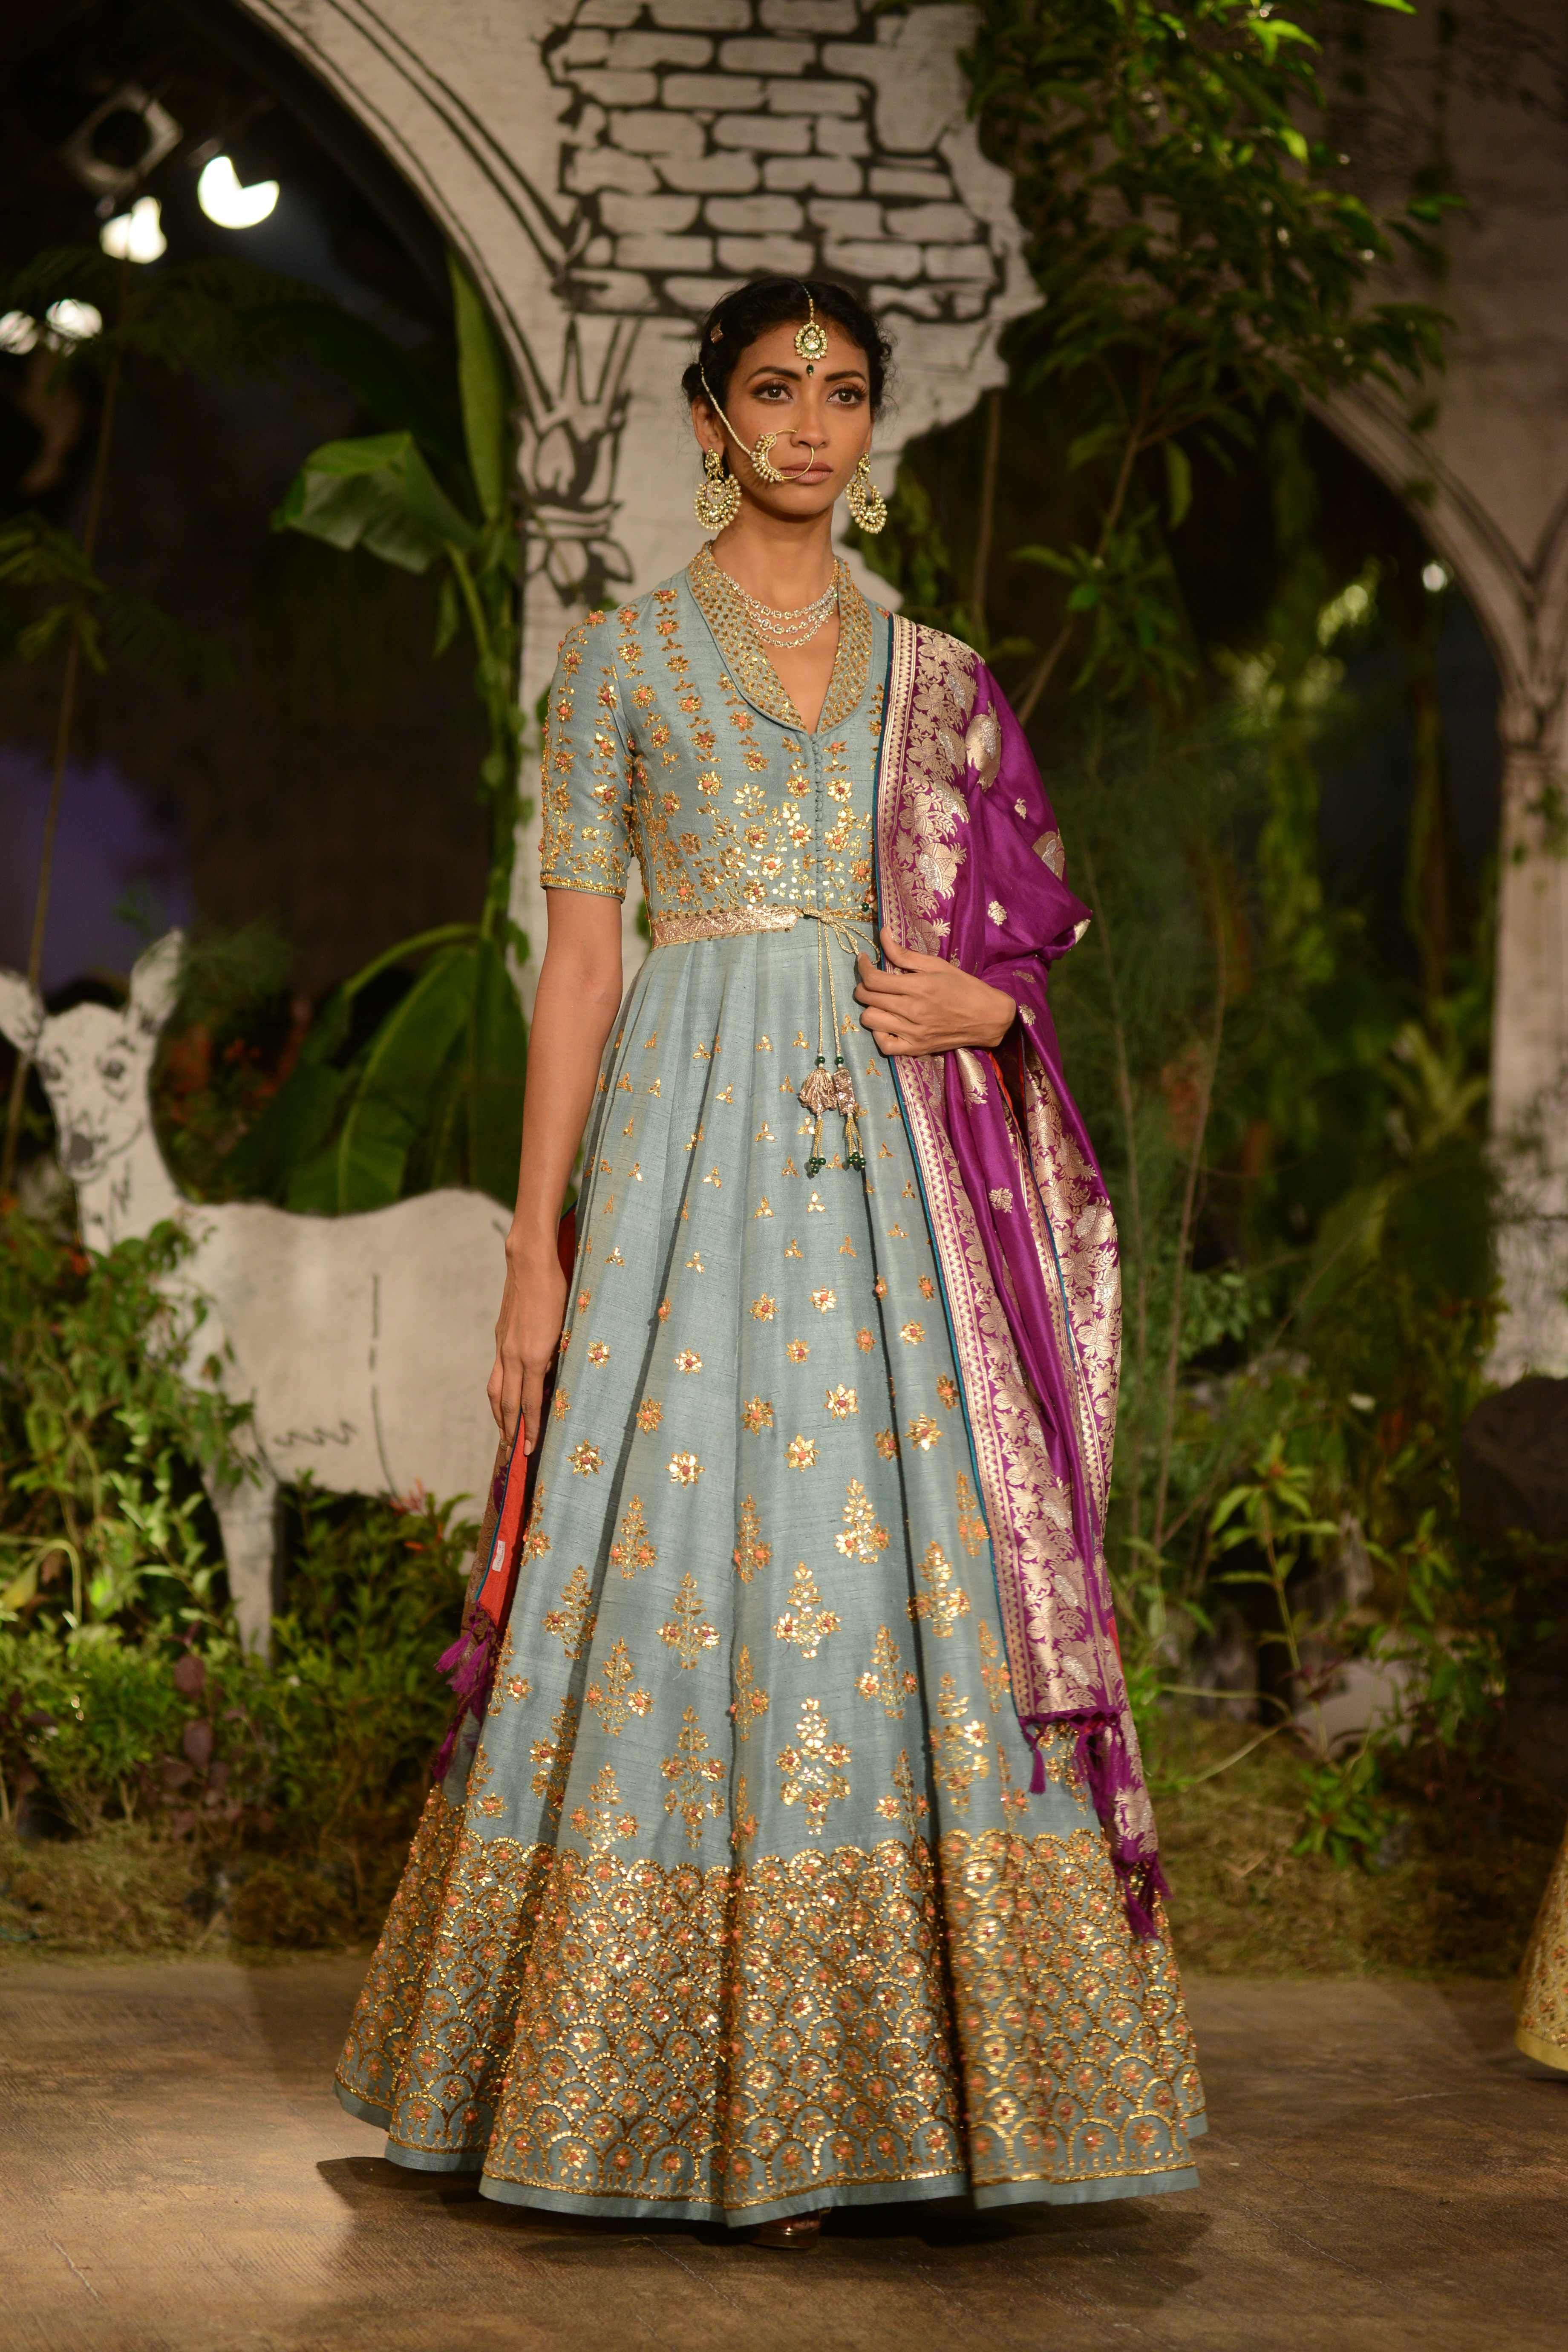 Pin By Suman On Weddings In 2019 Indian Wedding Gowns Indian